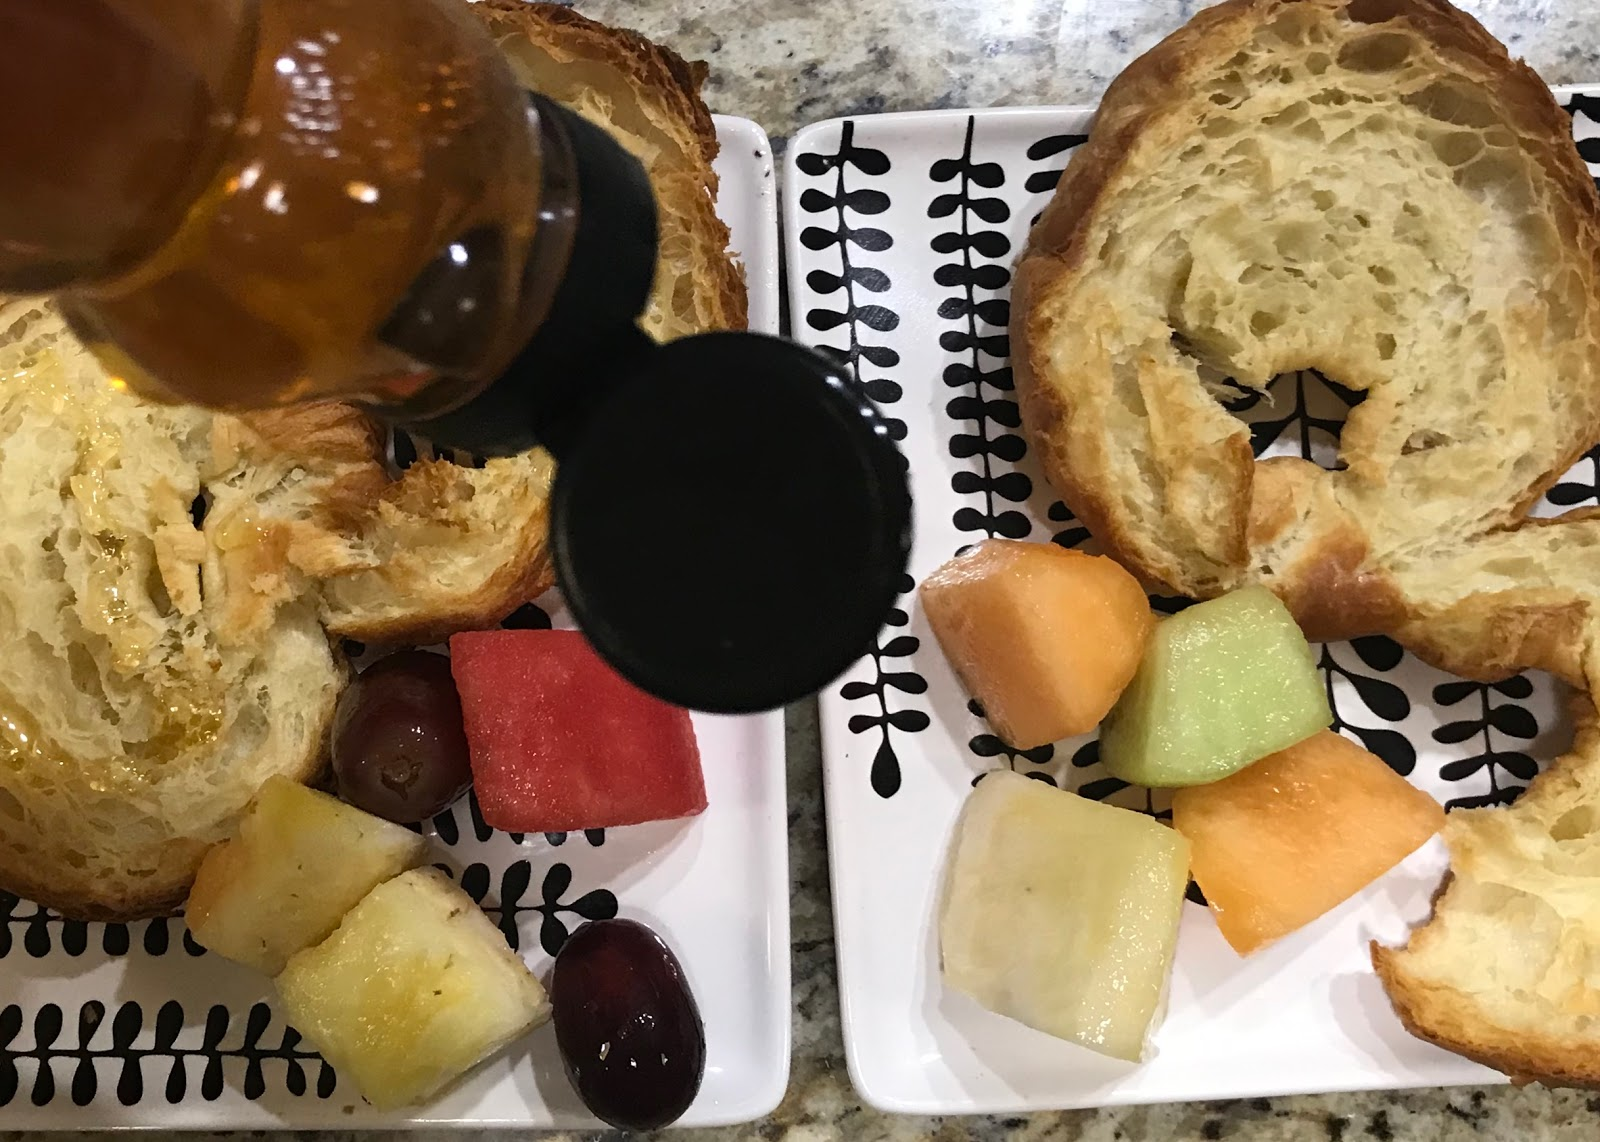 Image: Honey being poured over bread, side of fruit. Bits Of Food